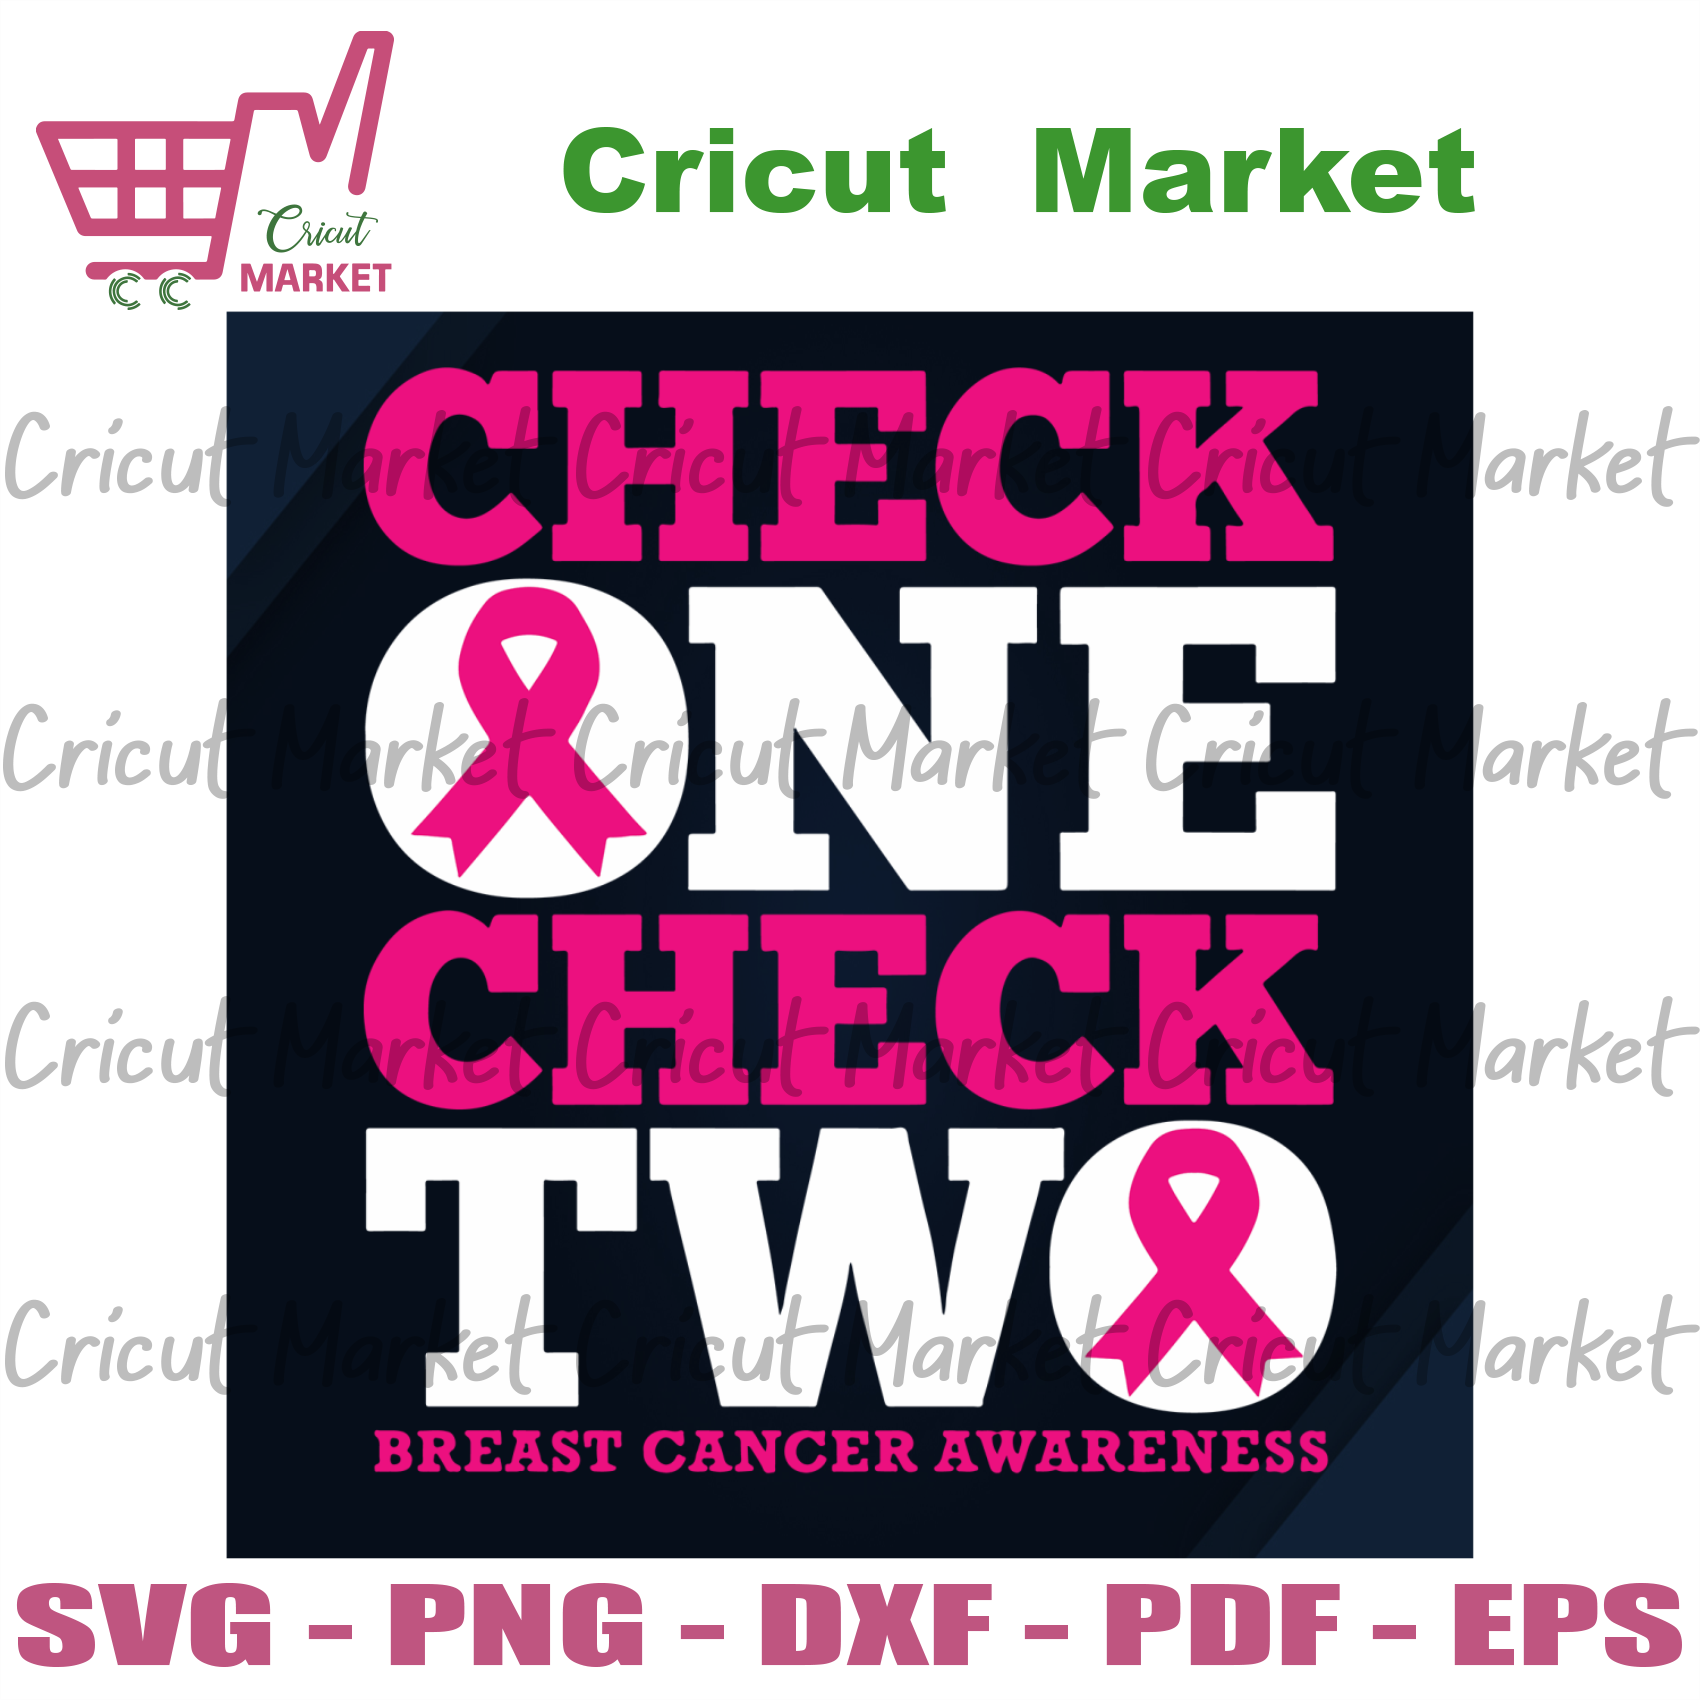 Check One Check Two, Breast Cancer Svg, Breast Cancer Gift, Cancer Awareness, Cancer Ribbon Svg, Breast Cancer Ribbon, Breast Cancer Anniversary, Breast Cancer Ribbon Print, Ribbon Svg, Pink